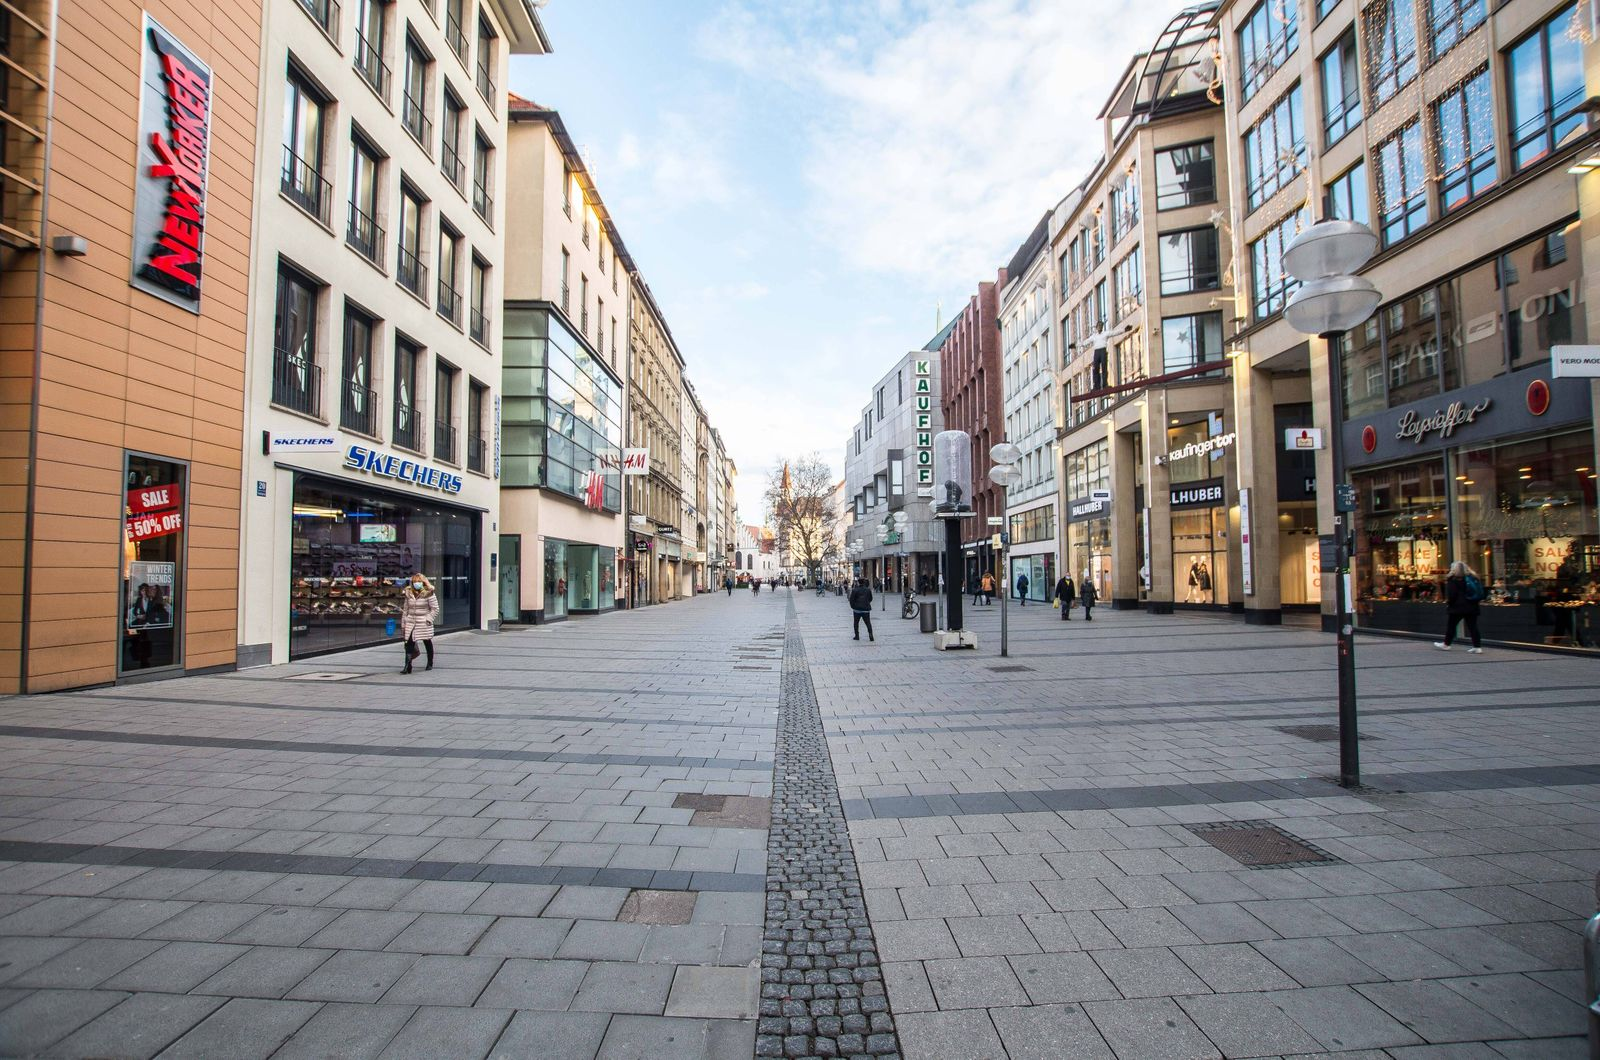 December 16, 2020, Munich, Bavaria, Germany: Scenes from the inner city pedestrian zone in Munich, Germany. Typically t